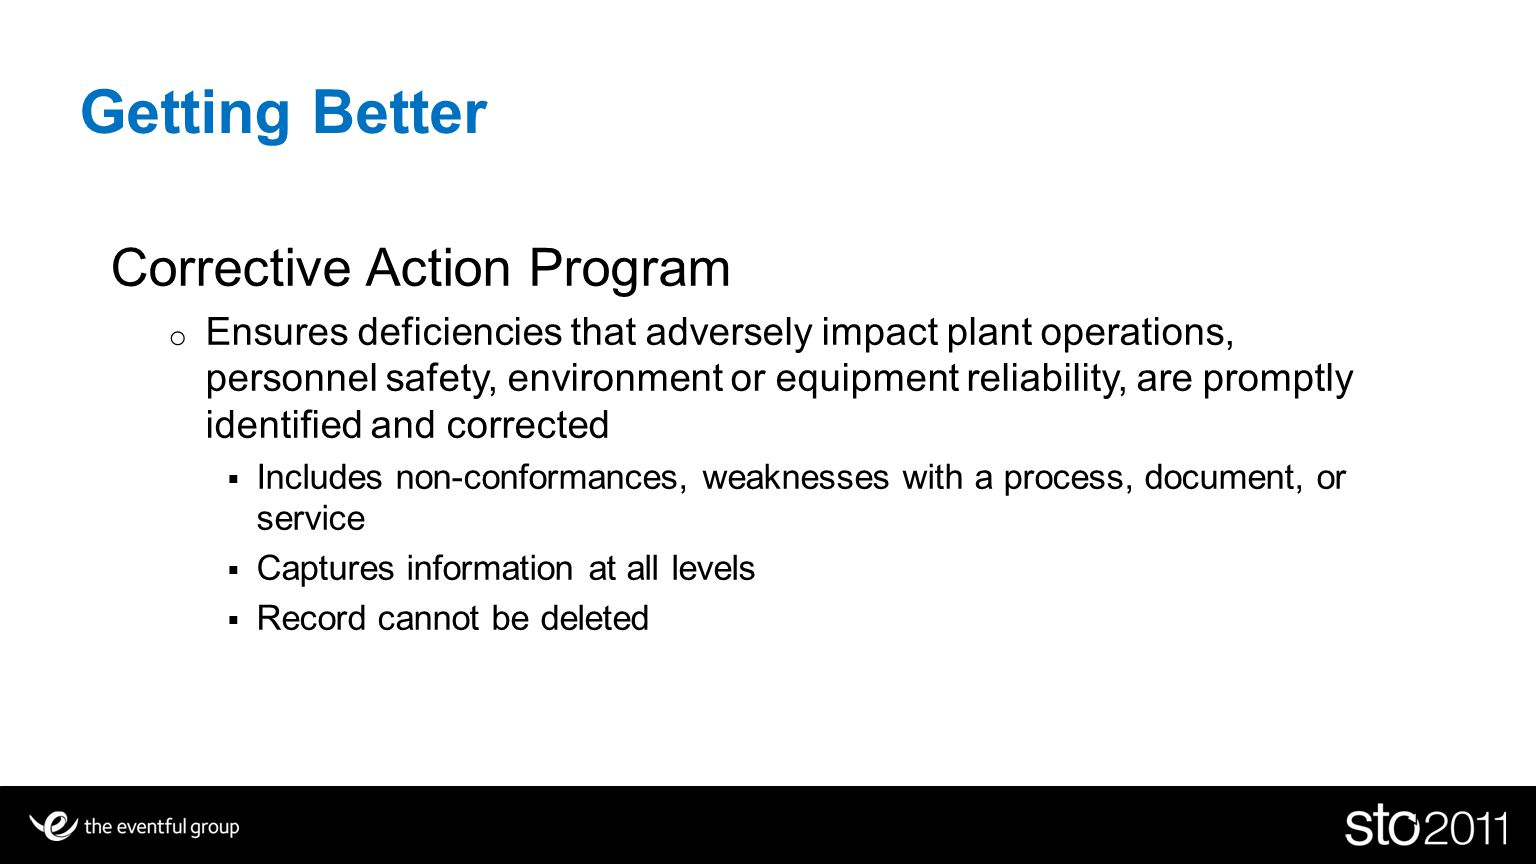 Getting Better Corrective Action Program o Ensures deficiencies that adversely impact plant operations, personnel safety, environment or equipment reliability, are promptly identified and corrected Includes non-conformances, weaknesses with a process, document, or service Captures information at all levels Record cannot be deleted